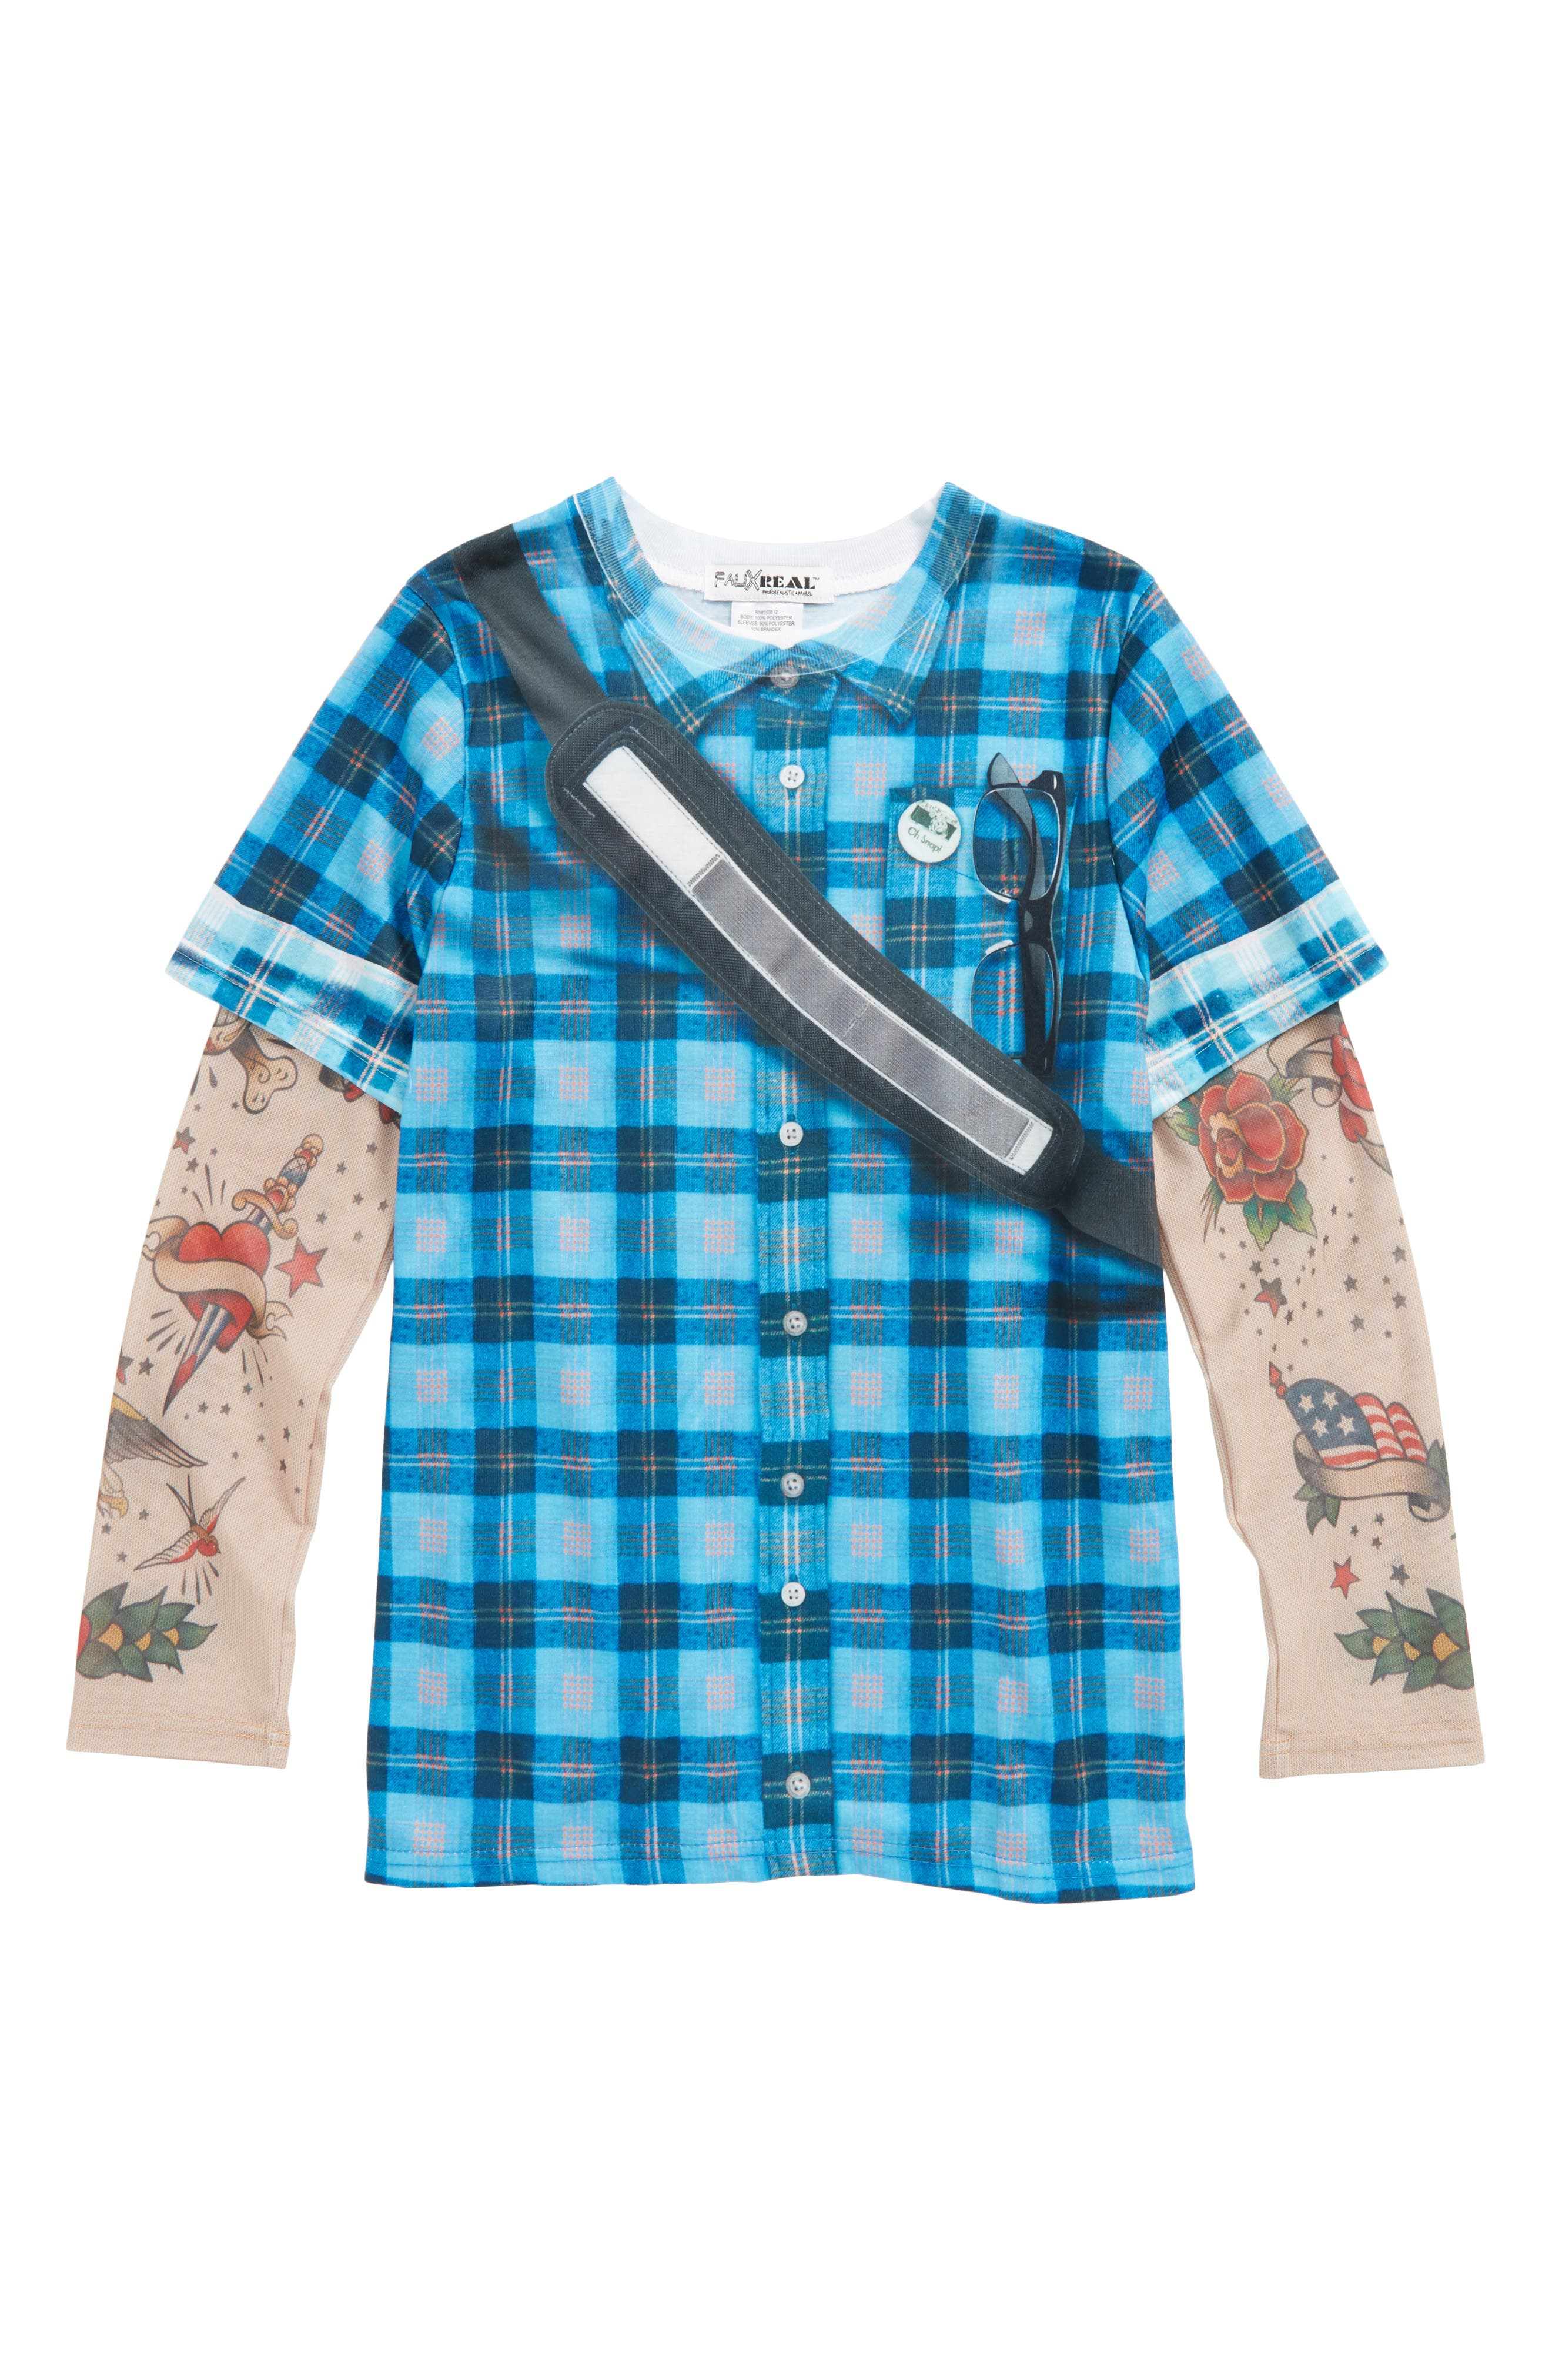 Main Image - Faux Real Hipster Messenger Bag Print Plaid T-Shirt with Tattoo Print Sleeves (Little Boys & Big Boys)